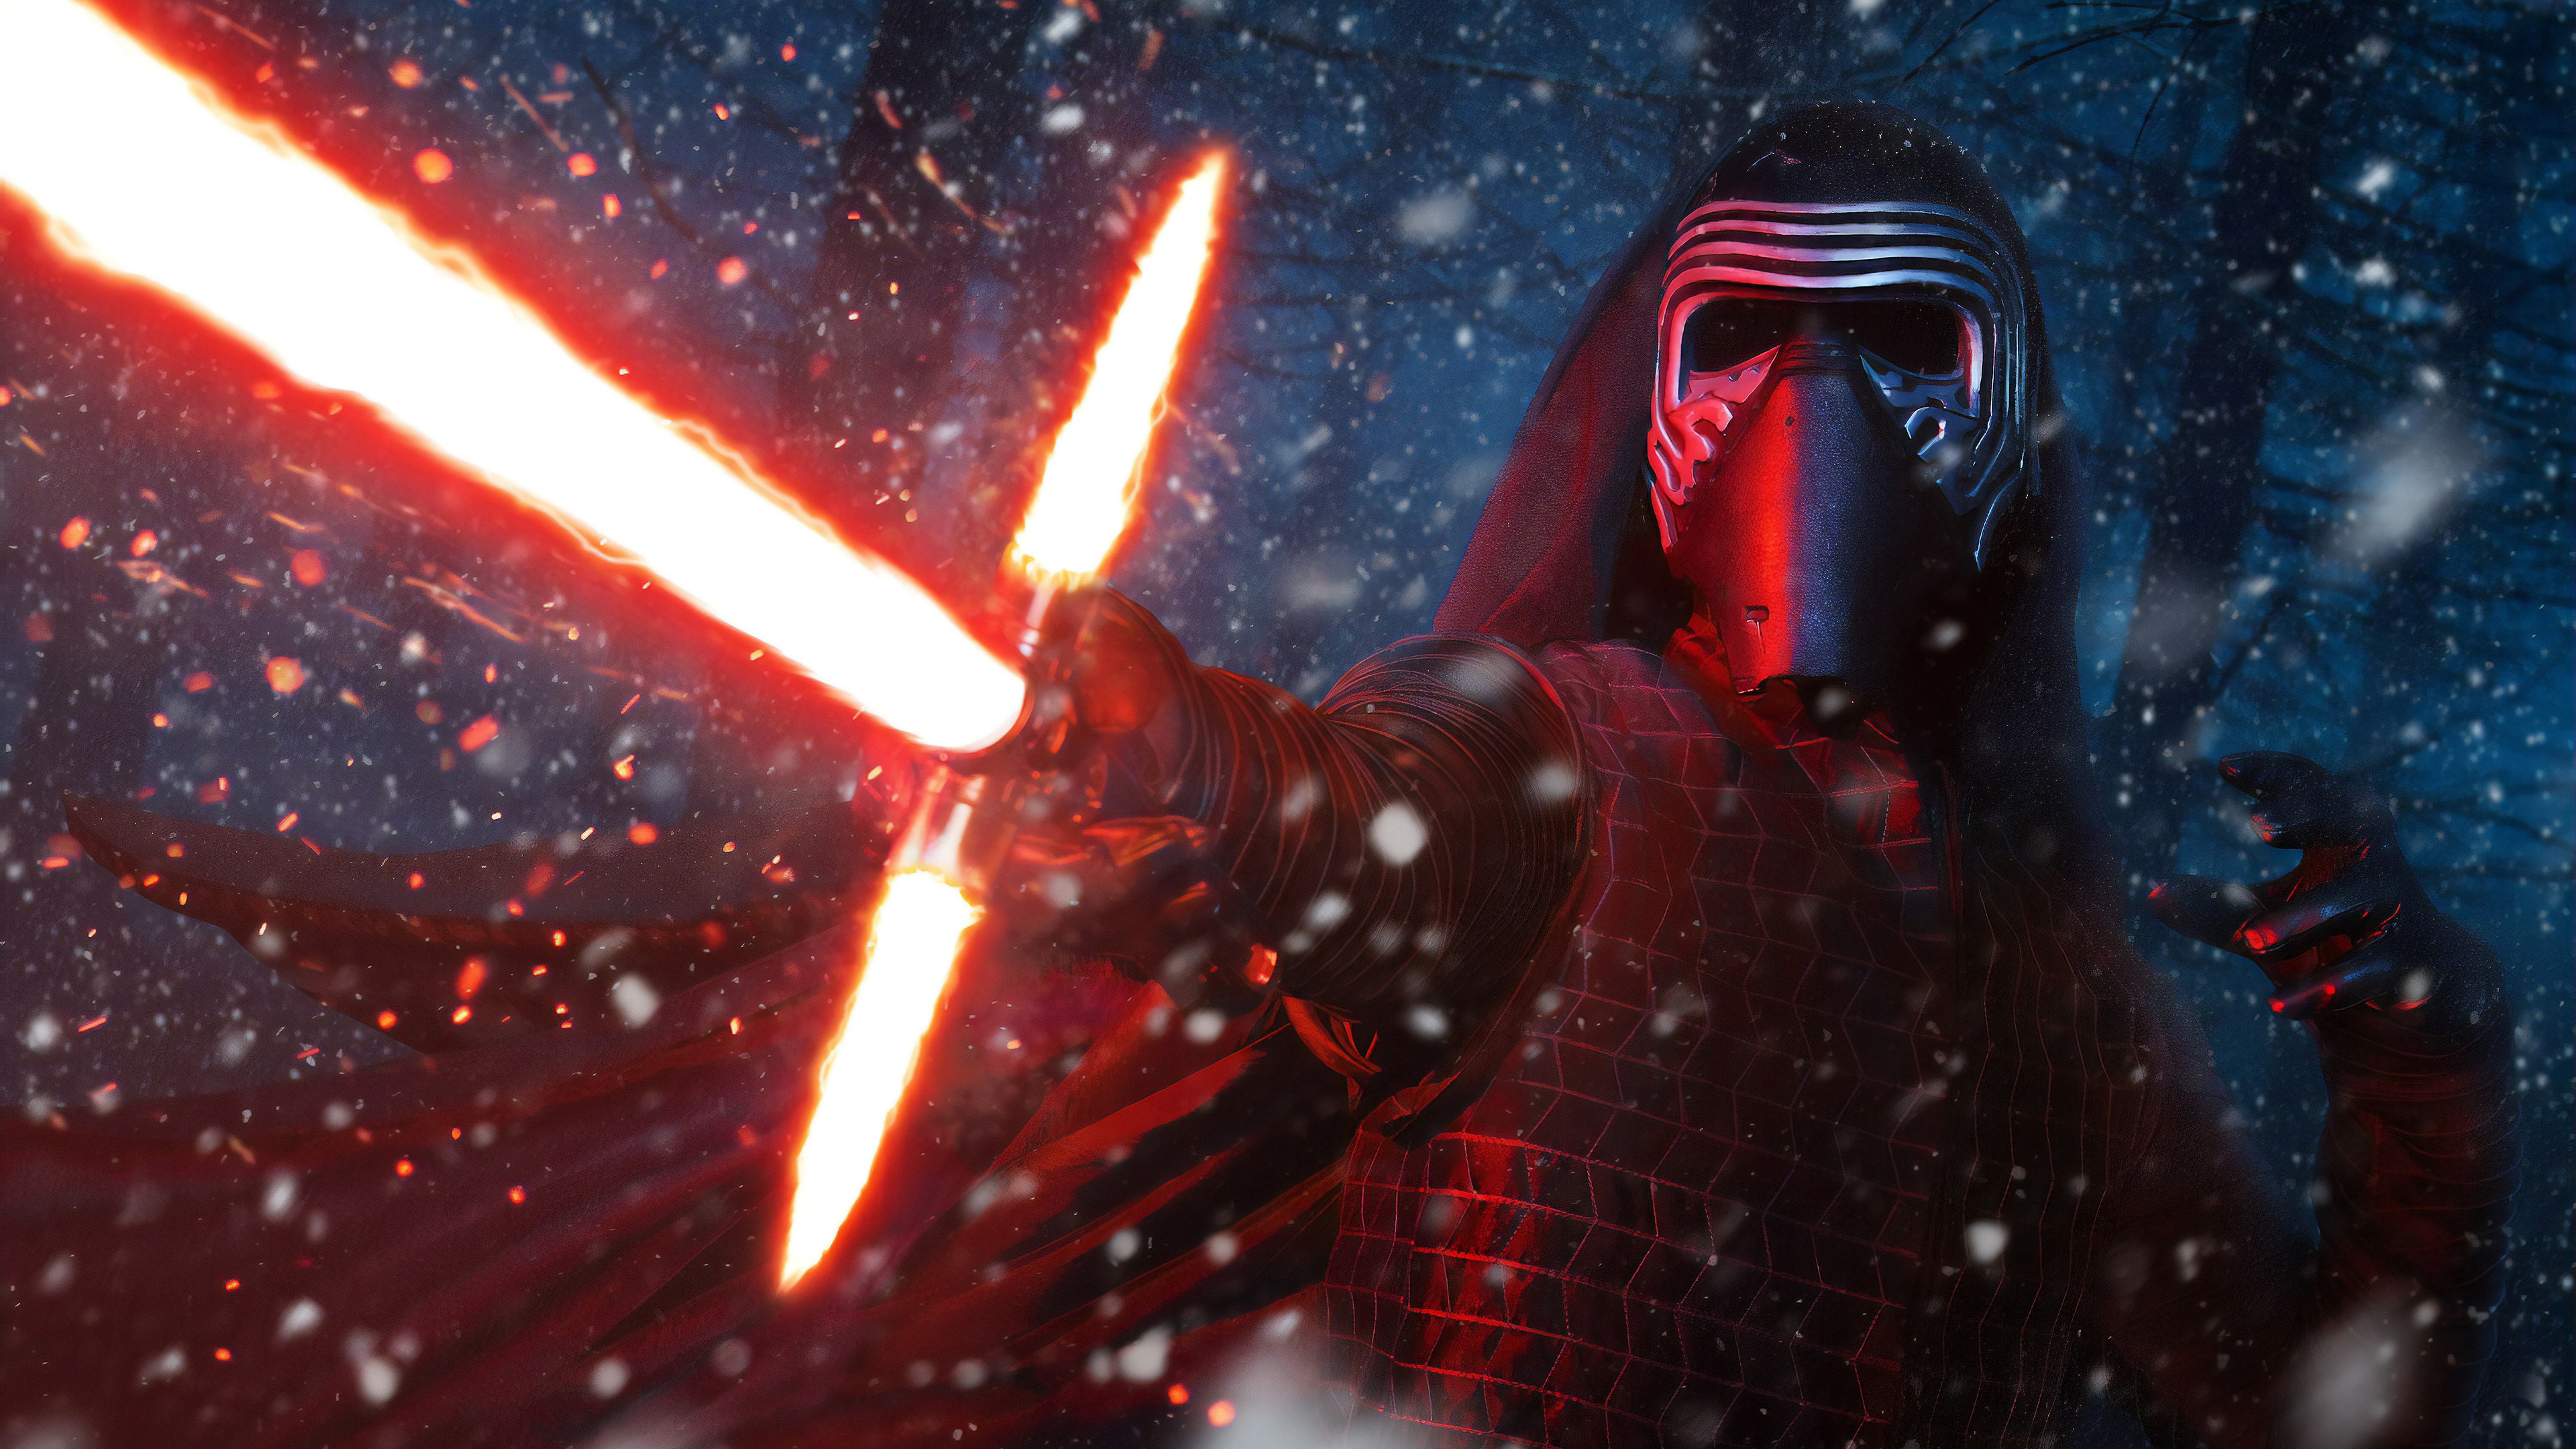 kylo ren cosplay 4k 1560535156 - Kylo Ren Cosplay 4k - movies wallpapers, kylo ren wallpapers, hd-wallpapers, cosplay wallpapers, behance wallpapers, 4k-wallpapers